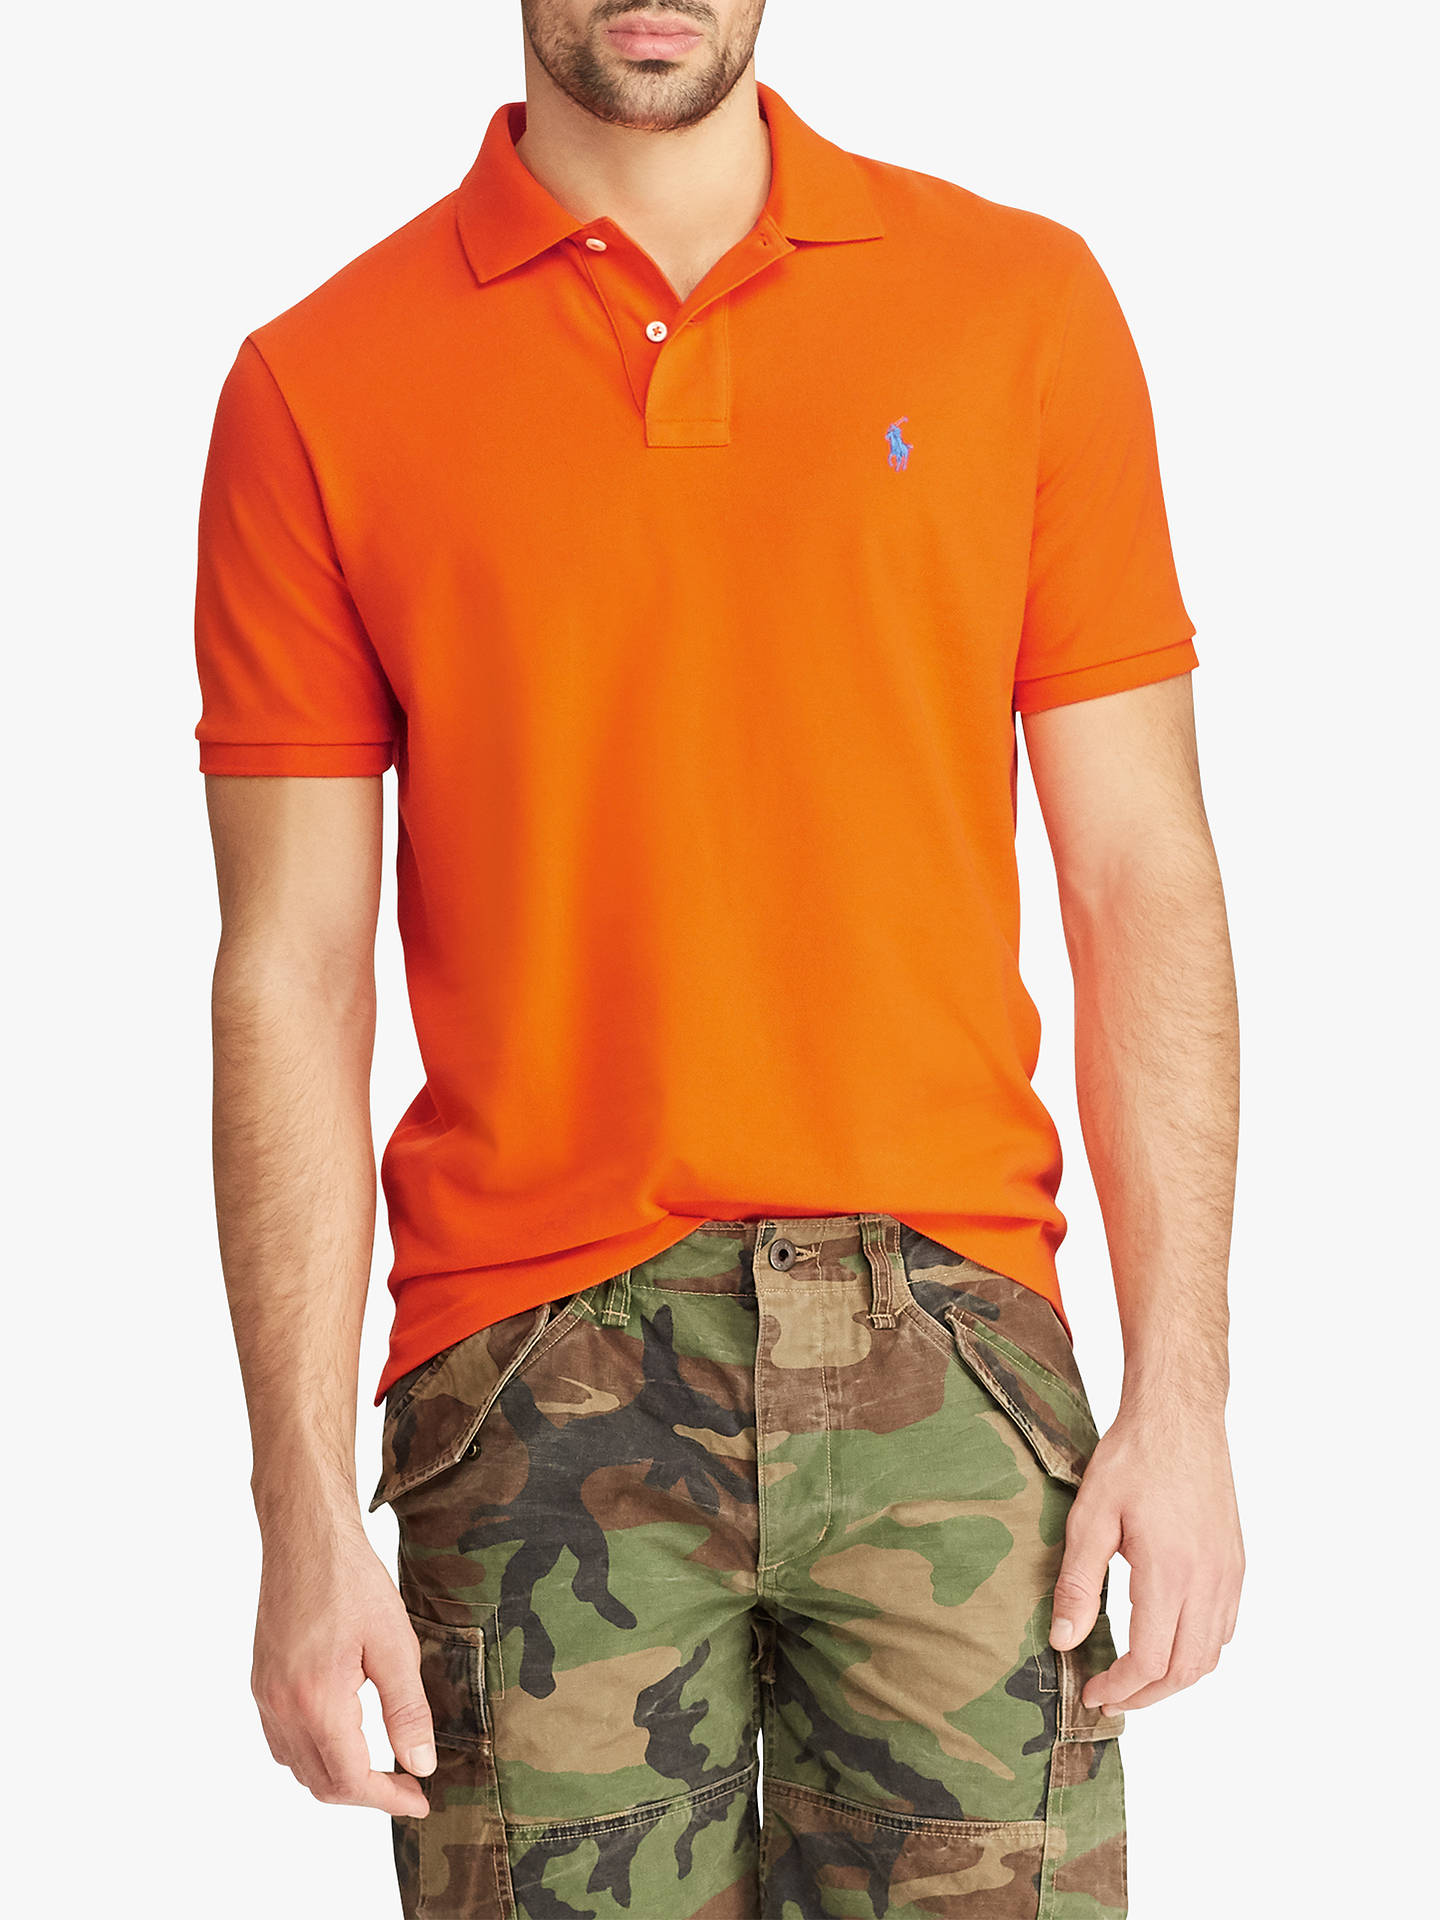 BuyPolo Ralph Lauren Short Sleeve Custom Slim Fit Mesh Polo Shirt, Sailing Orange, S Online at johnlewis.com